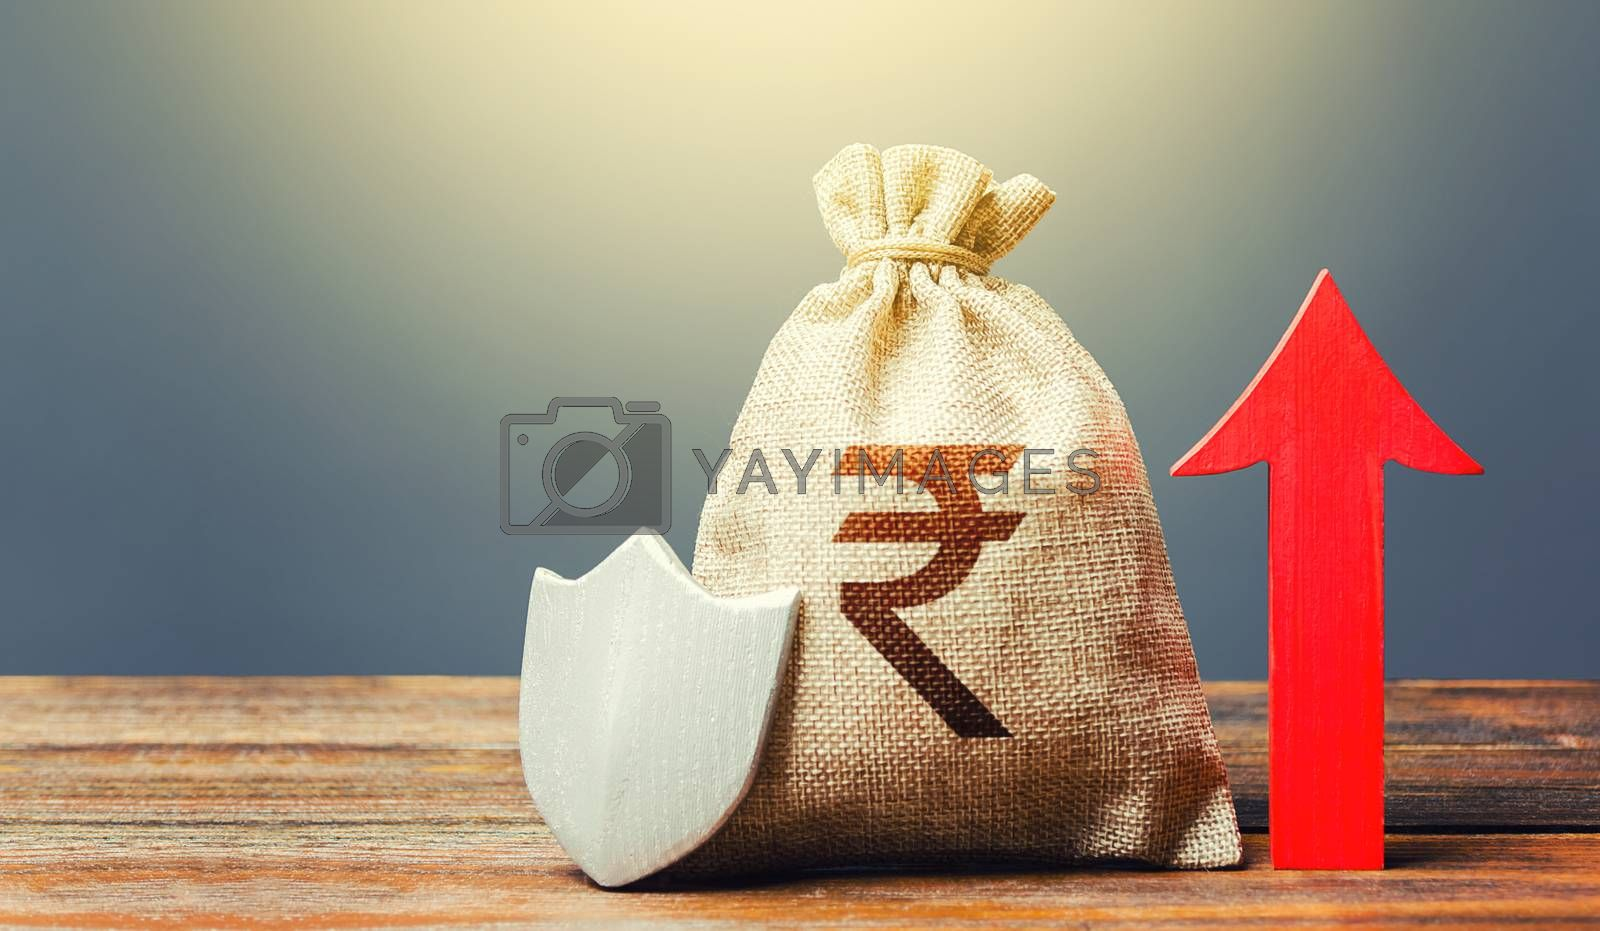 Indian rupee money bag with a shield and a red arrow up. Safety of investments, savings. Increasing the maximum amount of guaranteed insurance compensation for deposits. Financial stability.